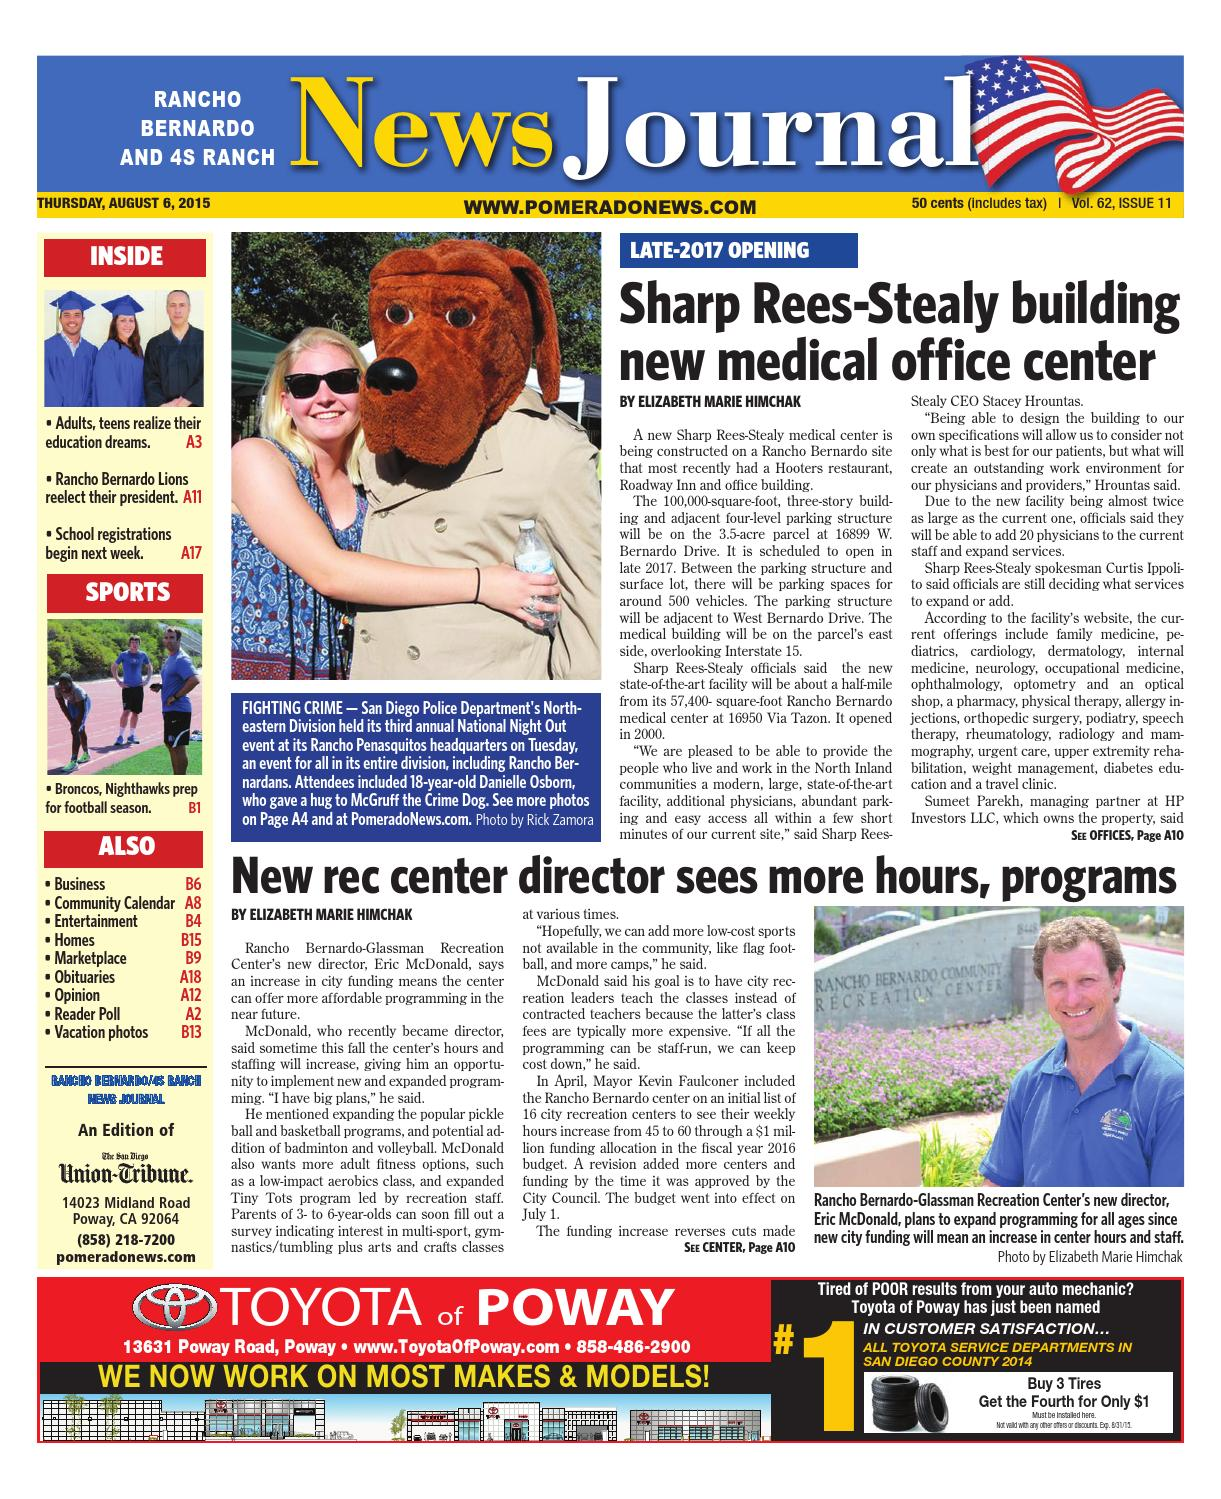 Rancho bernardo news journal 08 06 15 by MainStreet Media